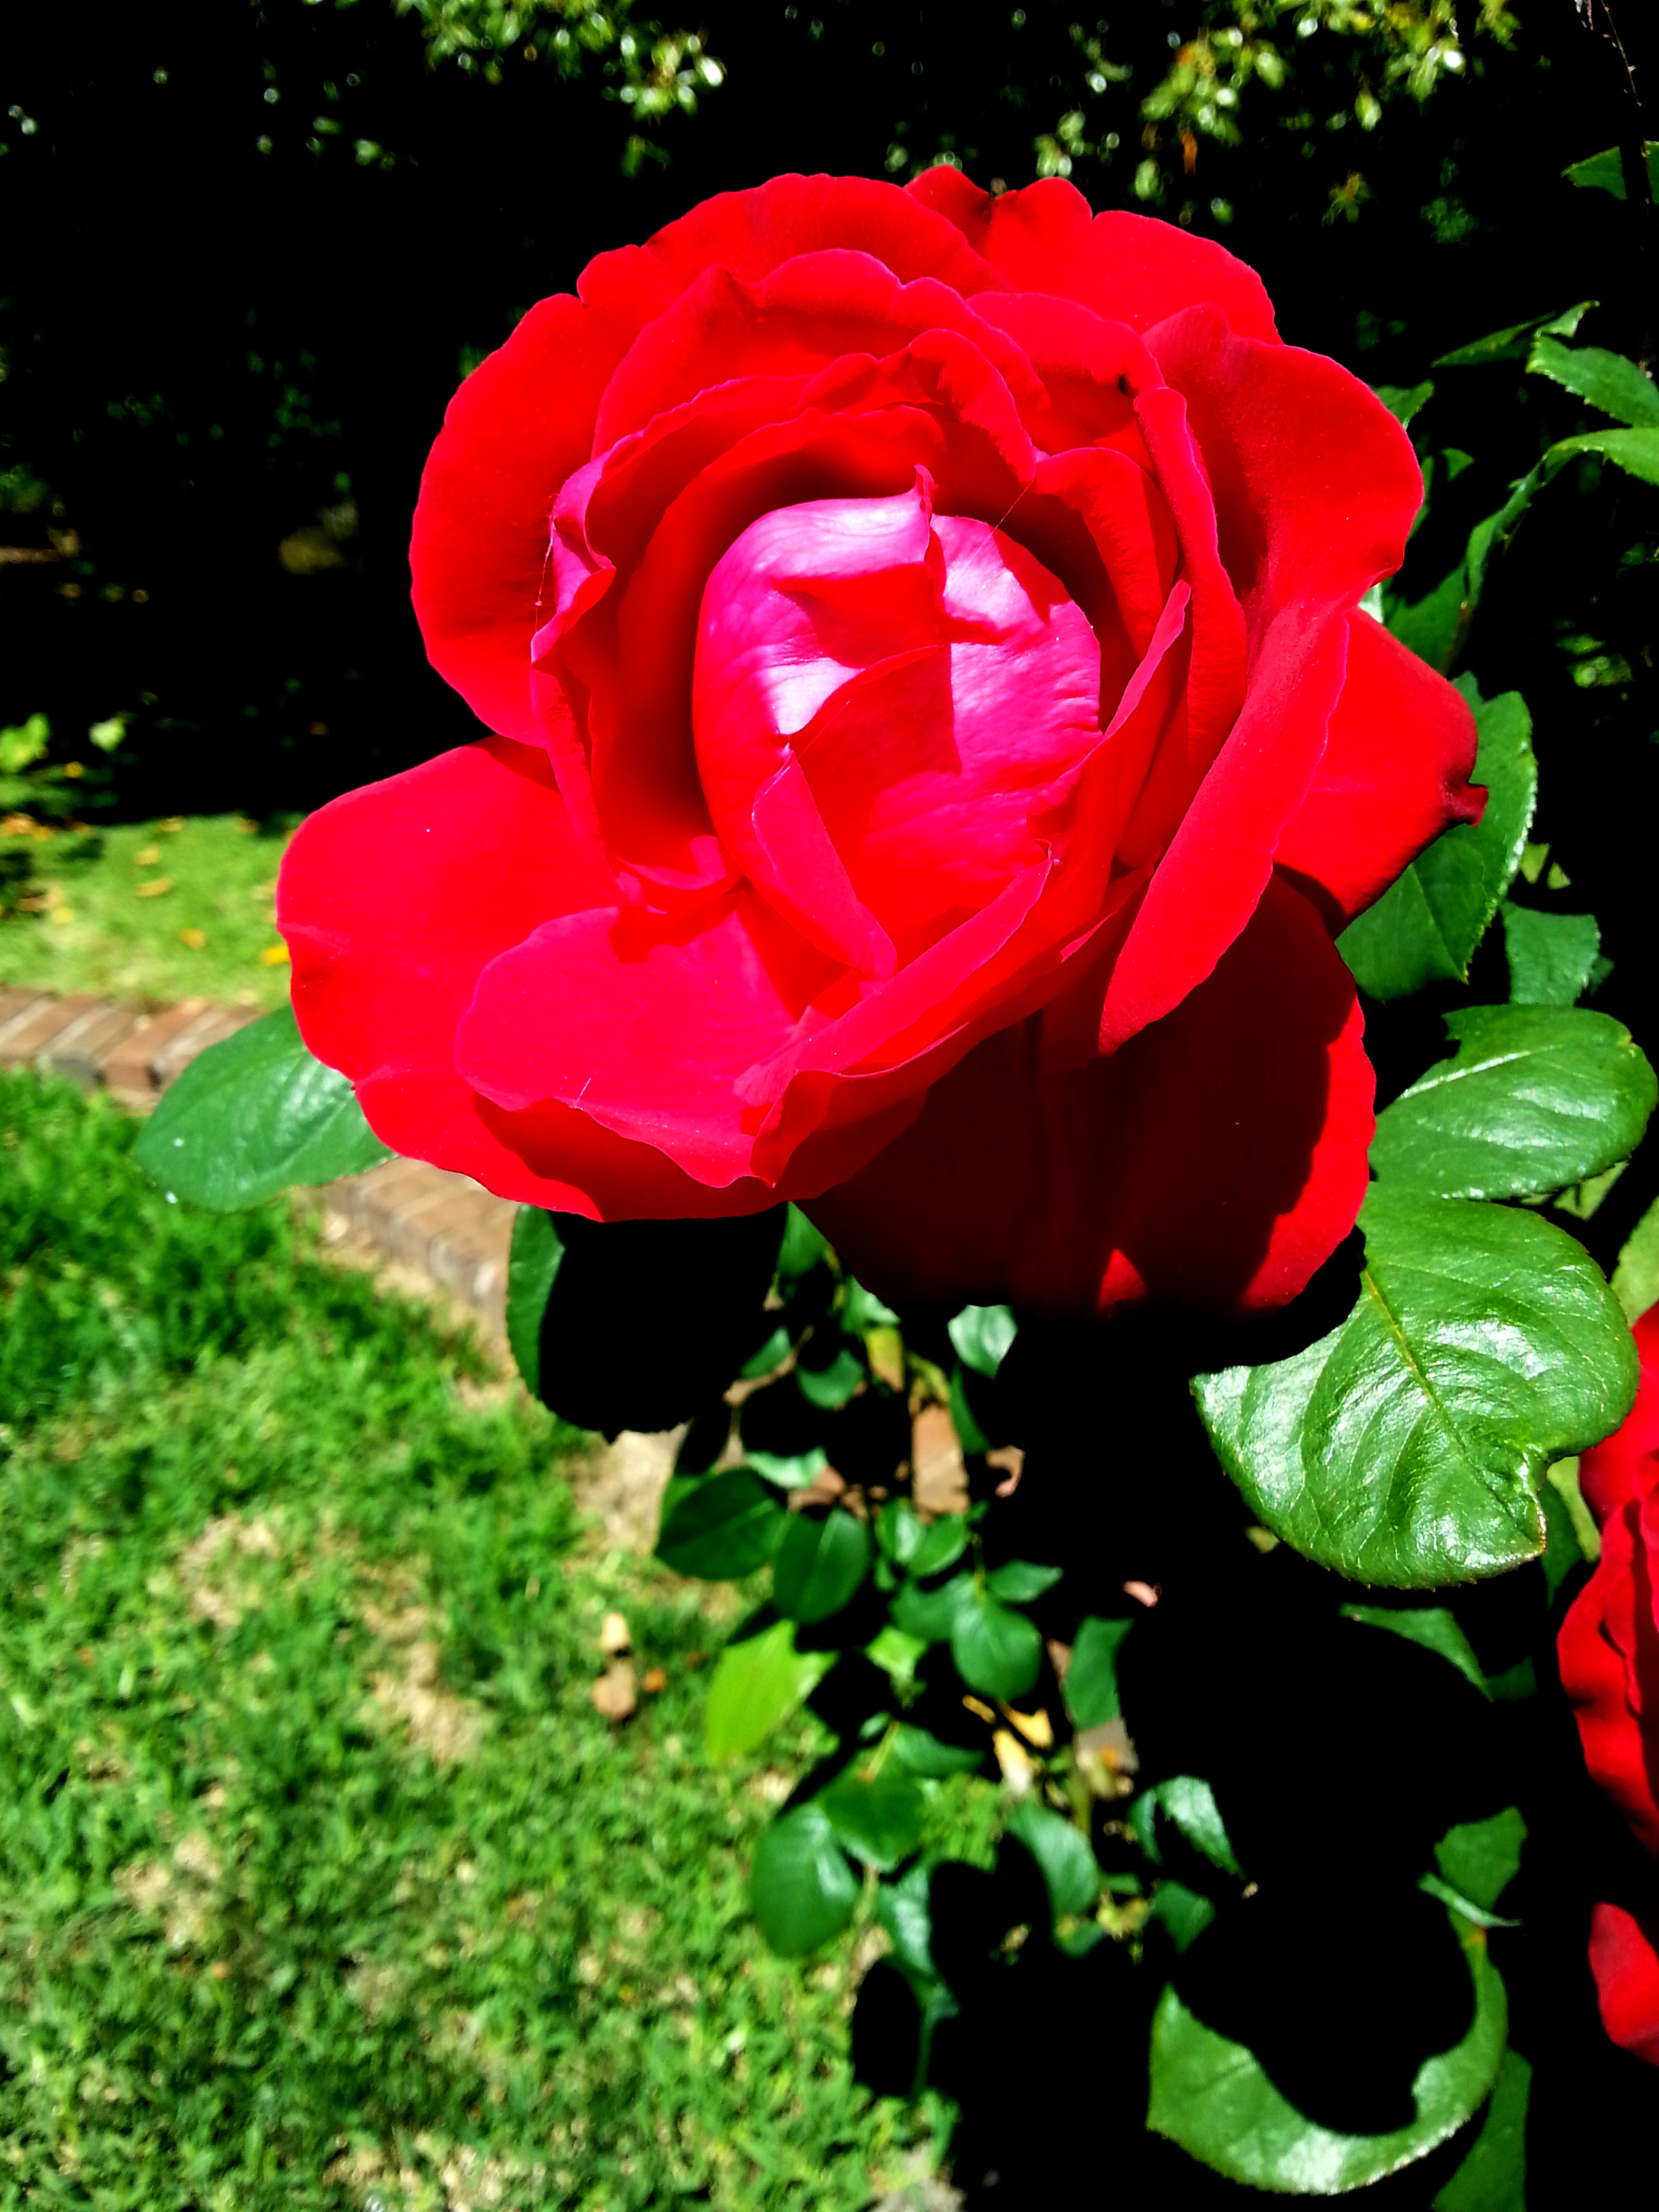 OFFERING THE ROSE OF FORGIVENESS (Photo by Pastor Davis)